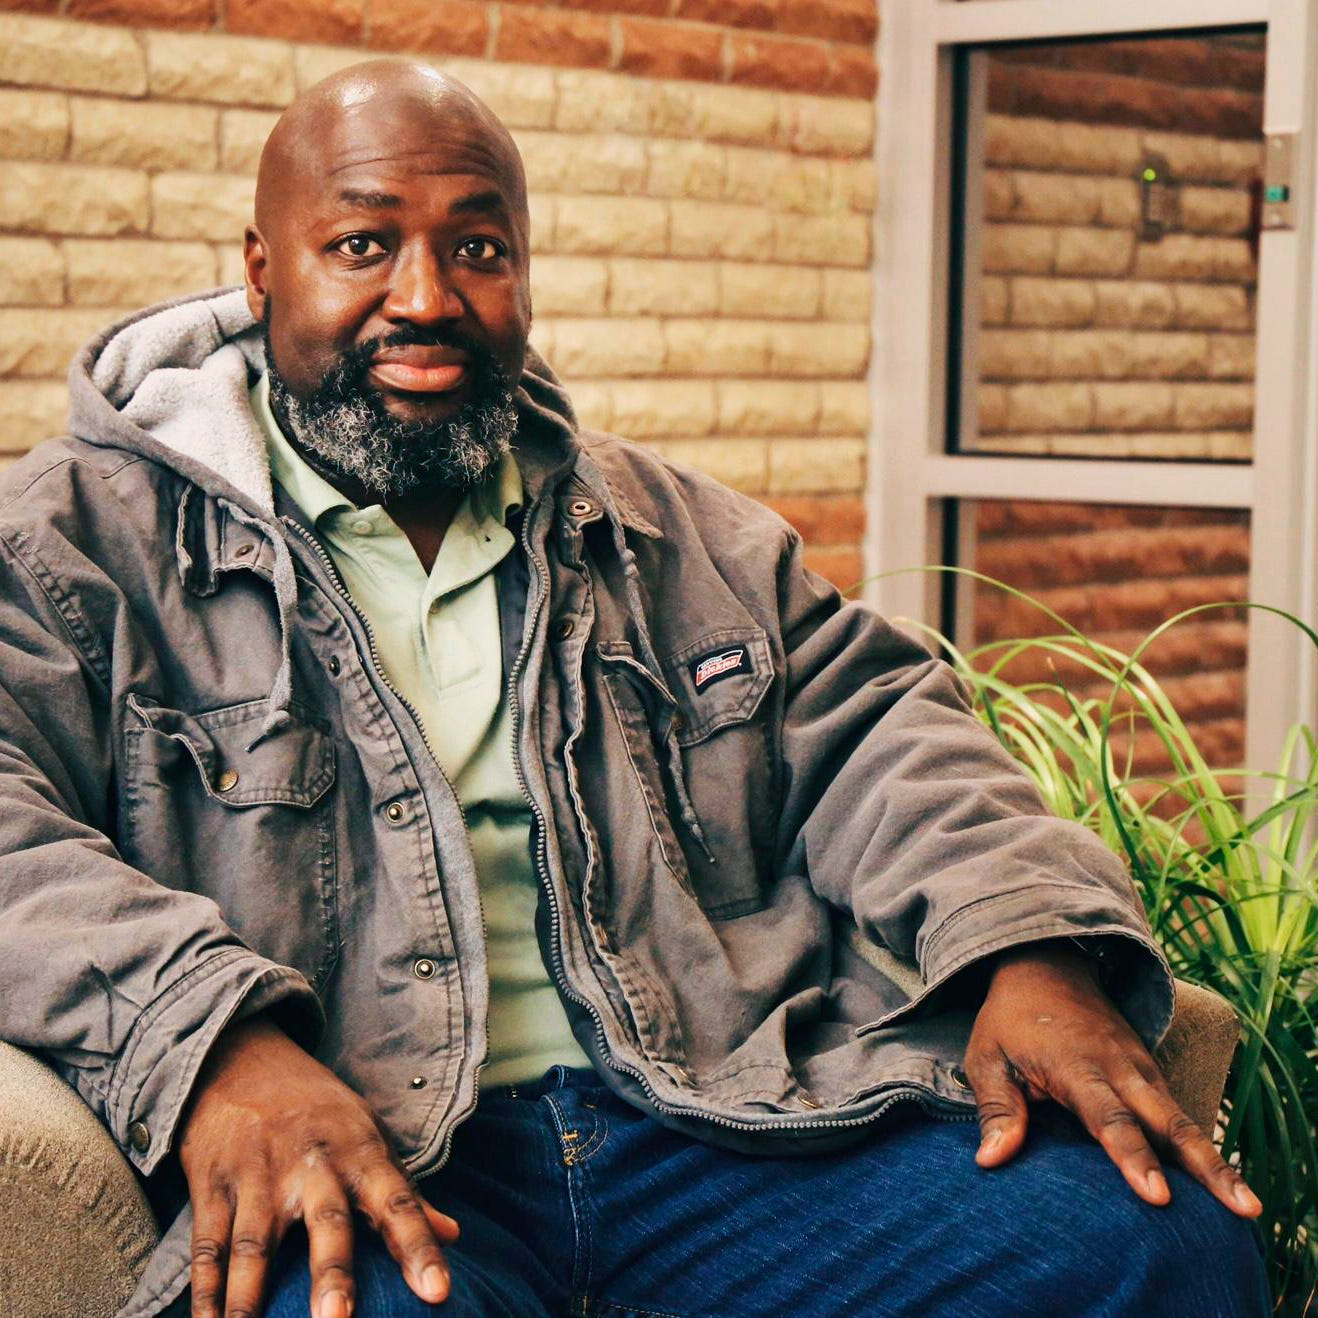 Freed from prison with help from Trump, Matthew Charles denied a place to live